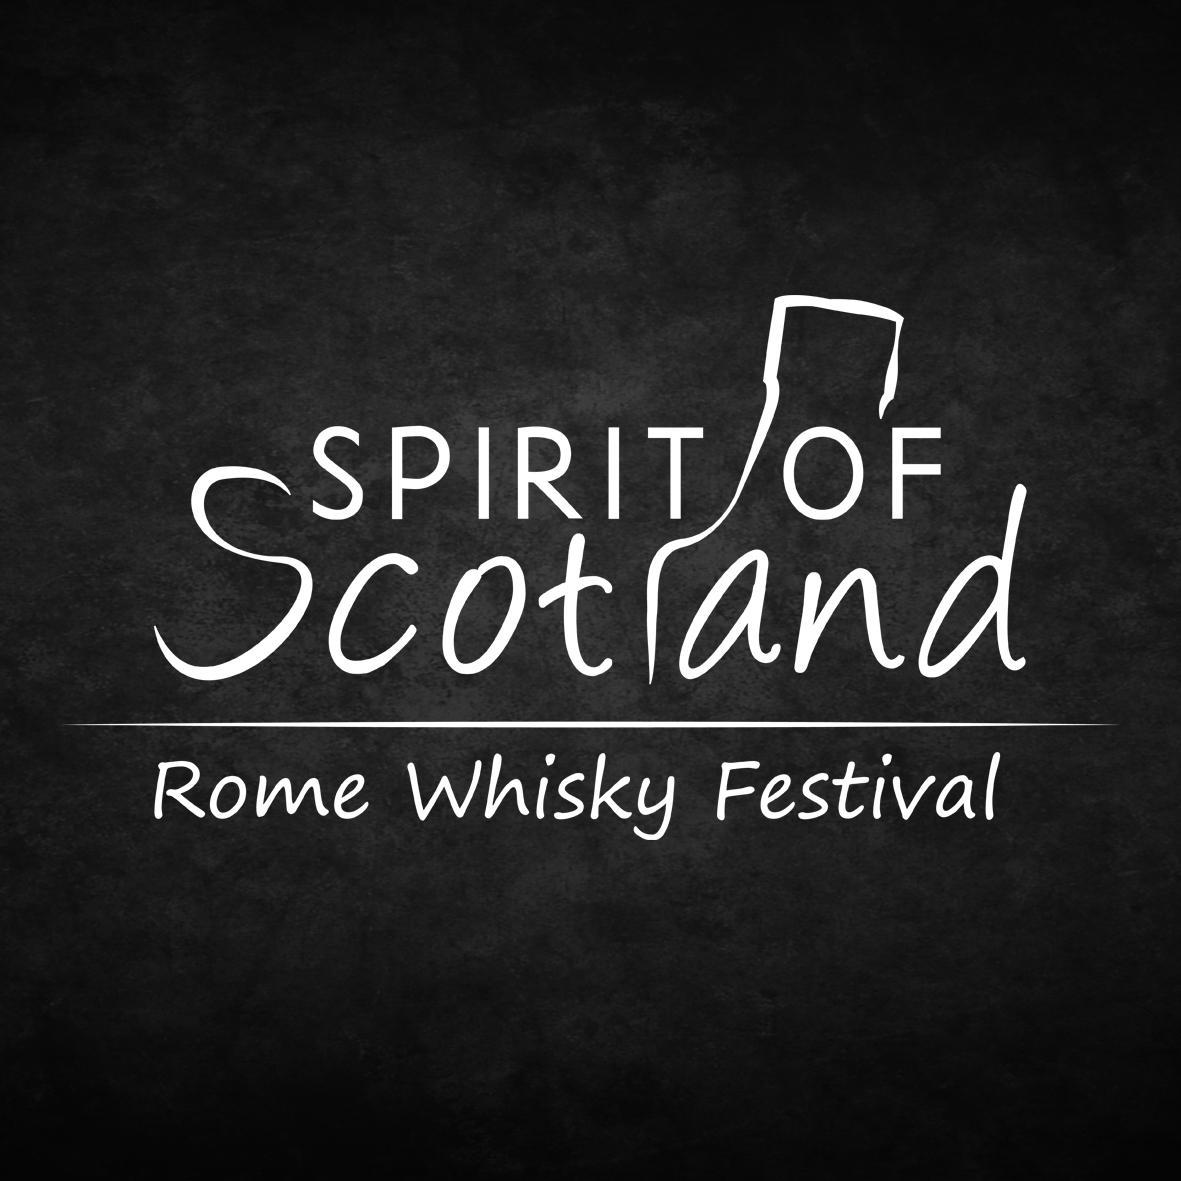 spirit of scotland whisky Roma 2017